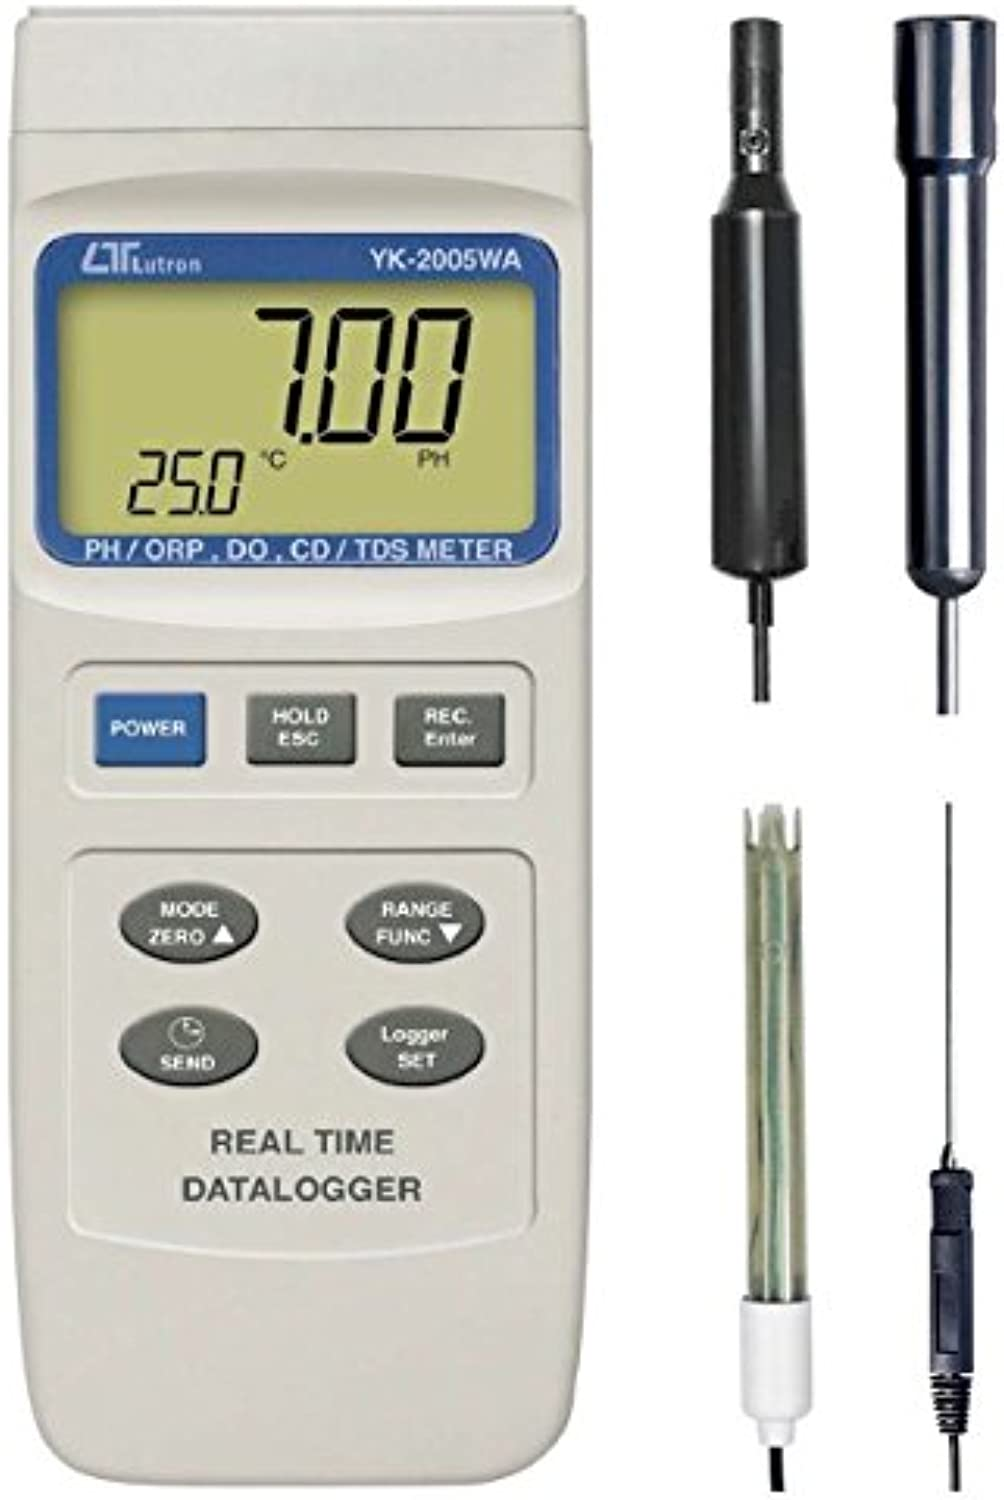 MEASURING DEVICE (OXYGEN, OH, ORP, O2, REDOX, TDS, EC, CONDUCTANCE) 200mS SA3